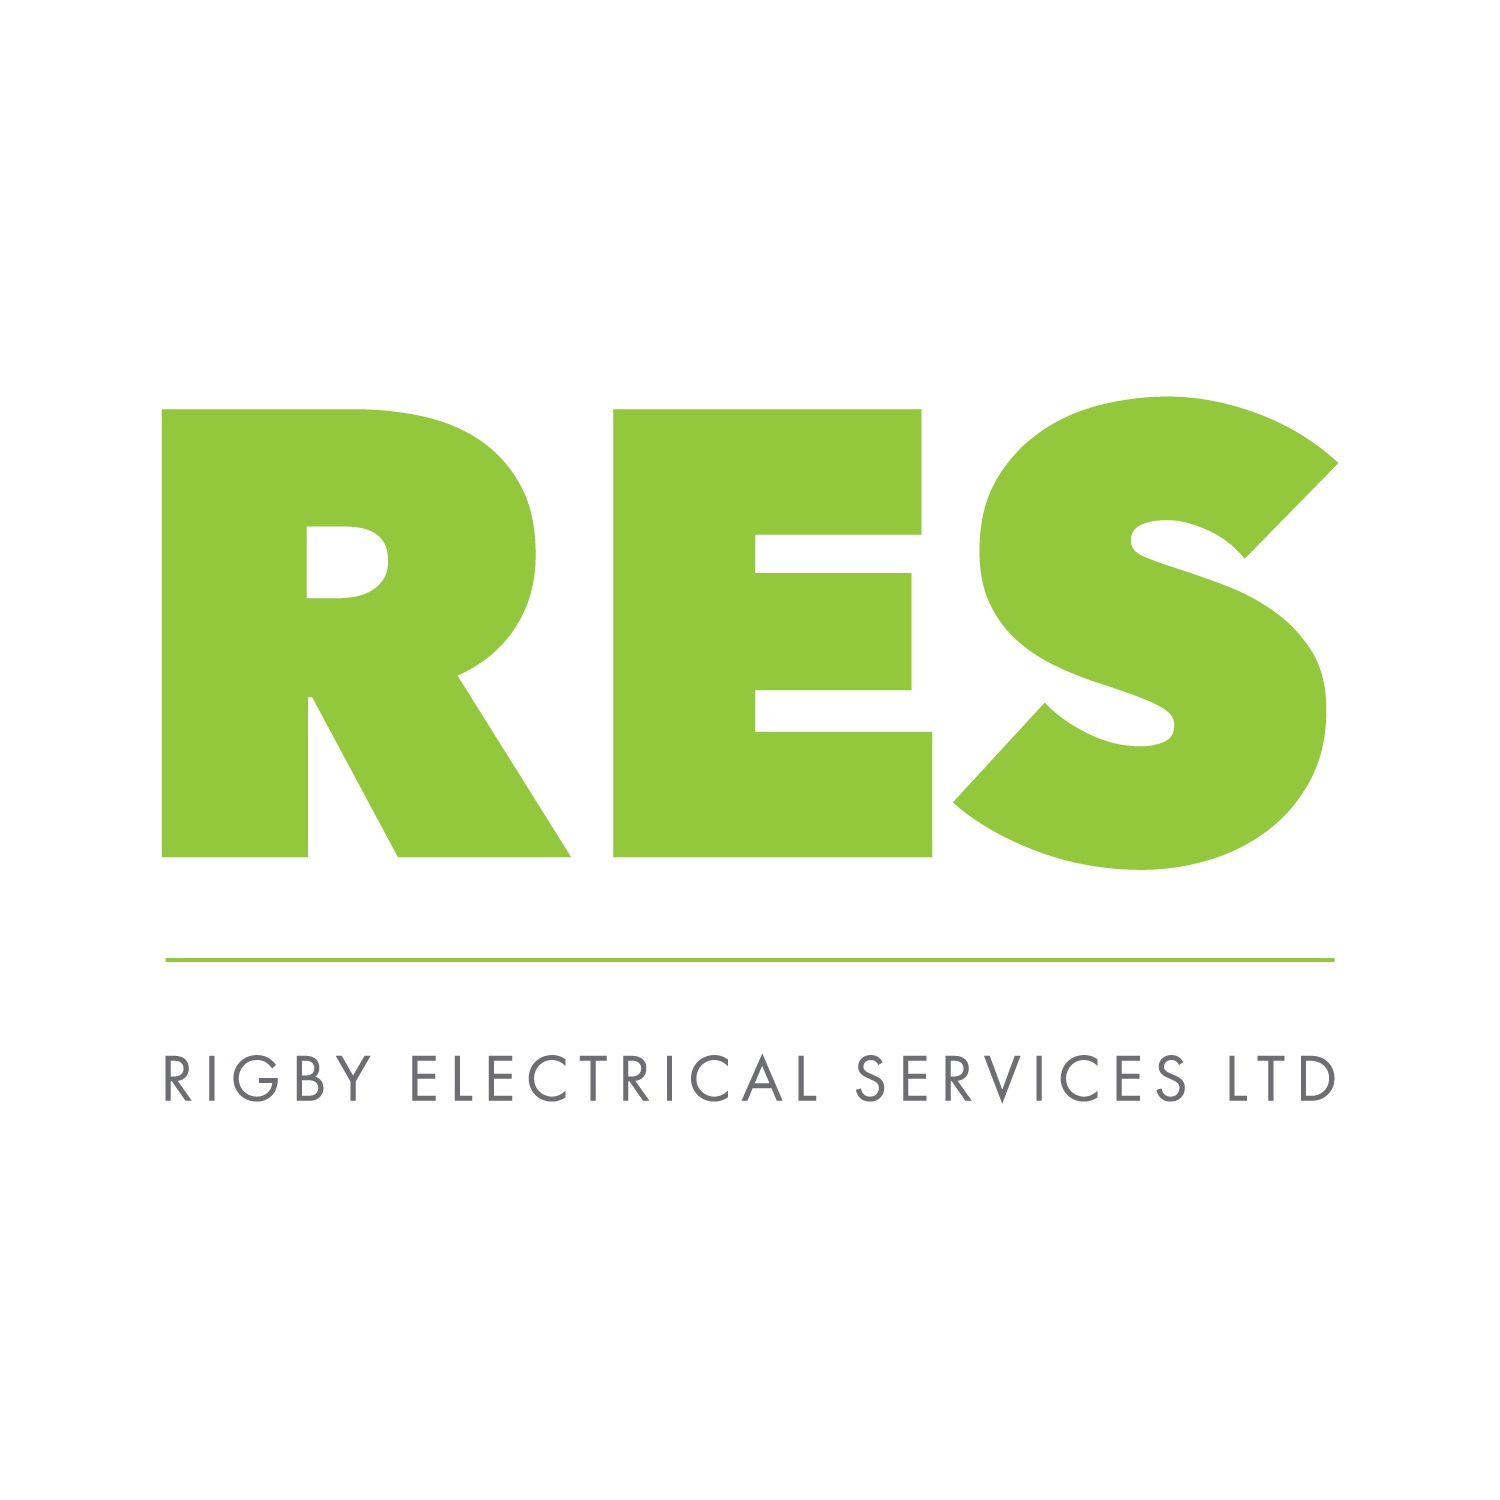 Rigby Electrical Services Ltd